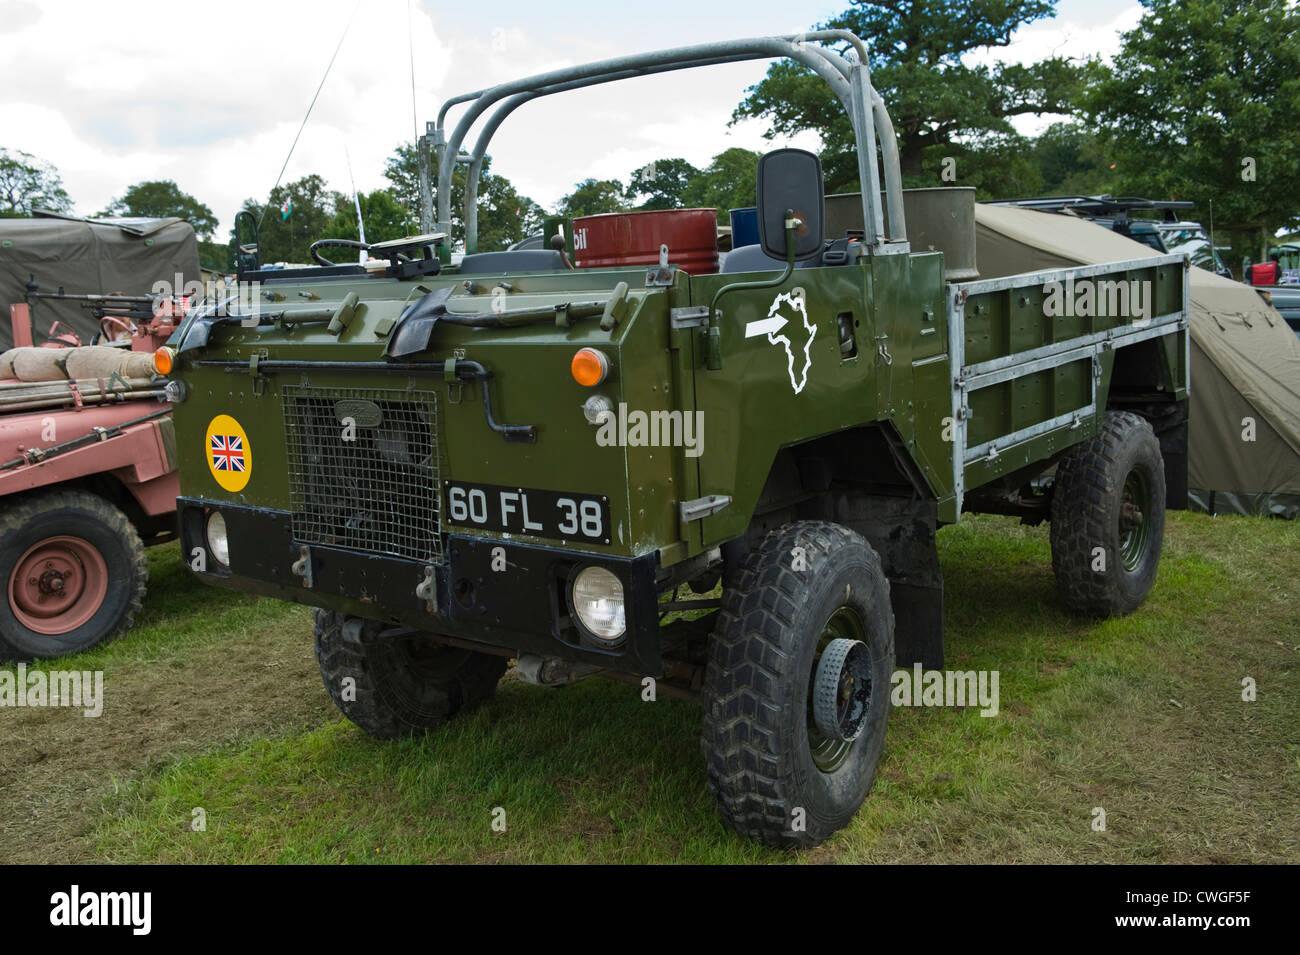 Display of Land Rover 4x4 military vehicles at annual Eastnor Land